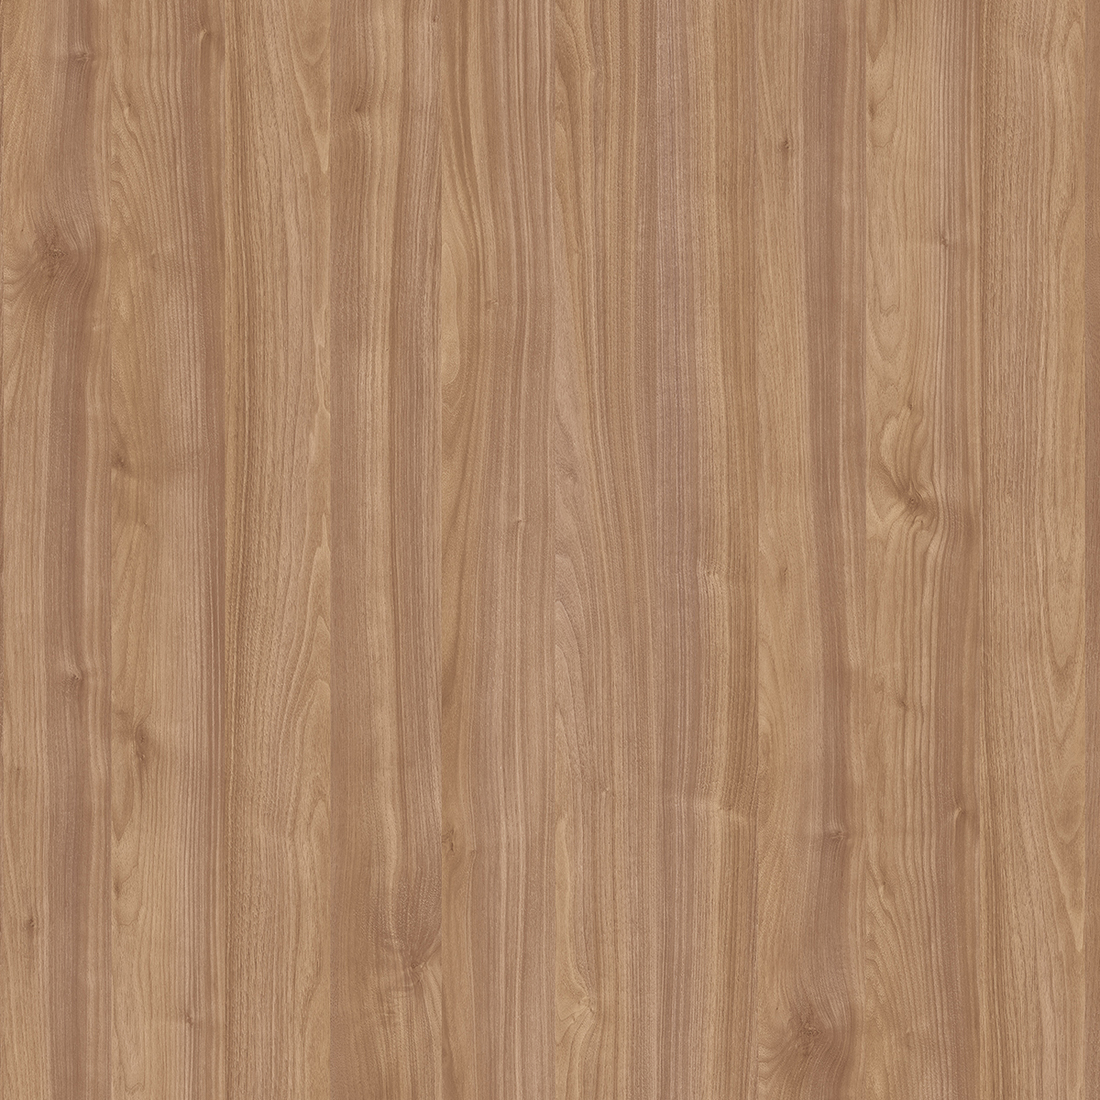 Krono K008PW Dió Light Select Walnut bútorlap 18 mm